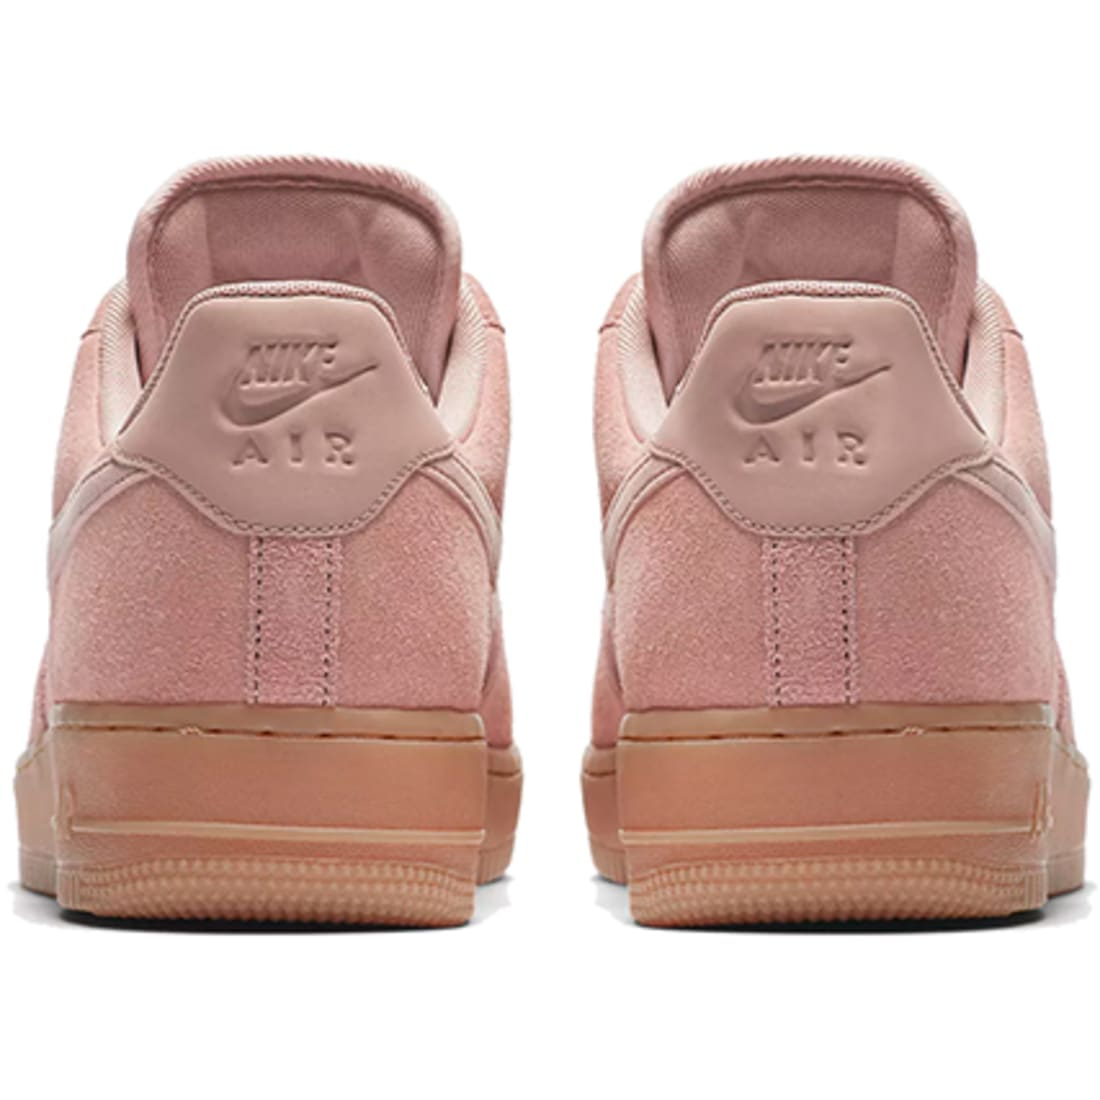 Nike Baskets Air Force 1 07 LV8 Suede AA1117 600 Particle